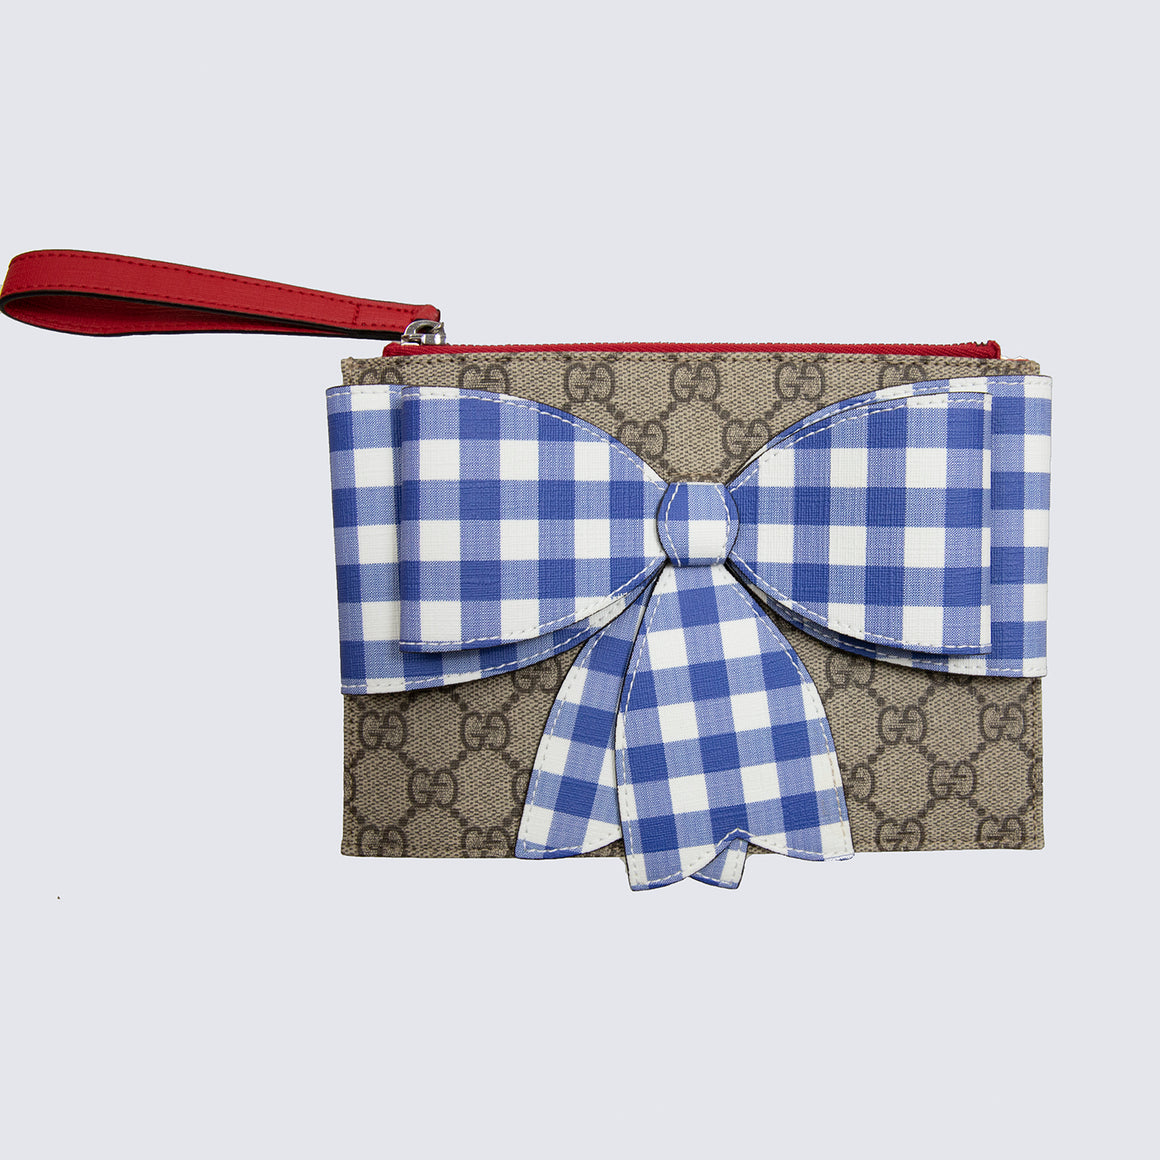 Gucci Monogram Wallet with Blue Ribbon Bow